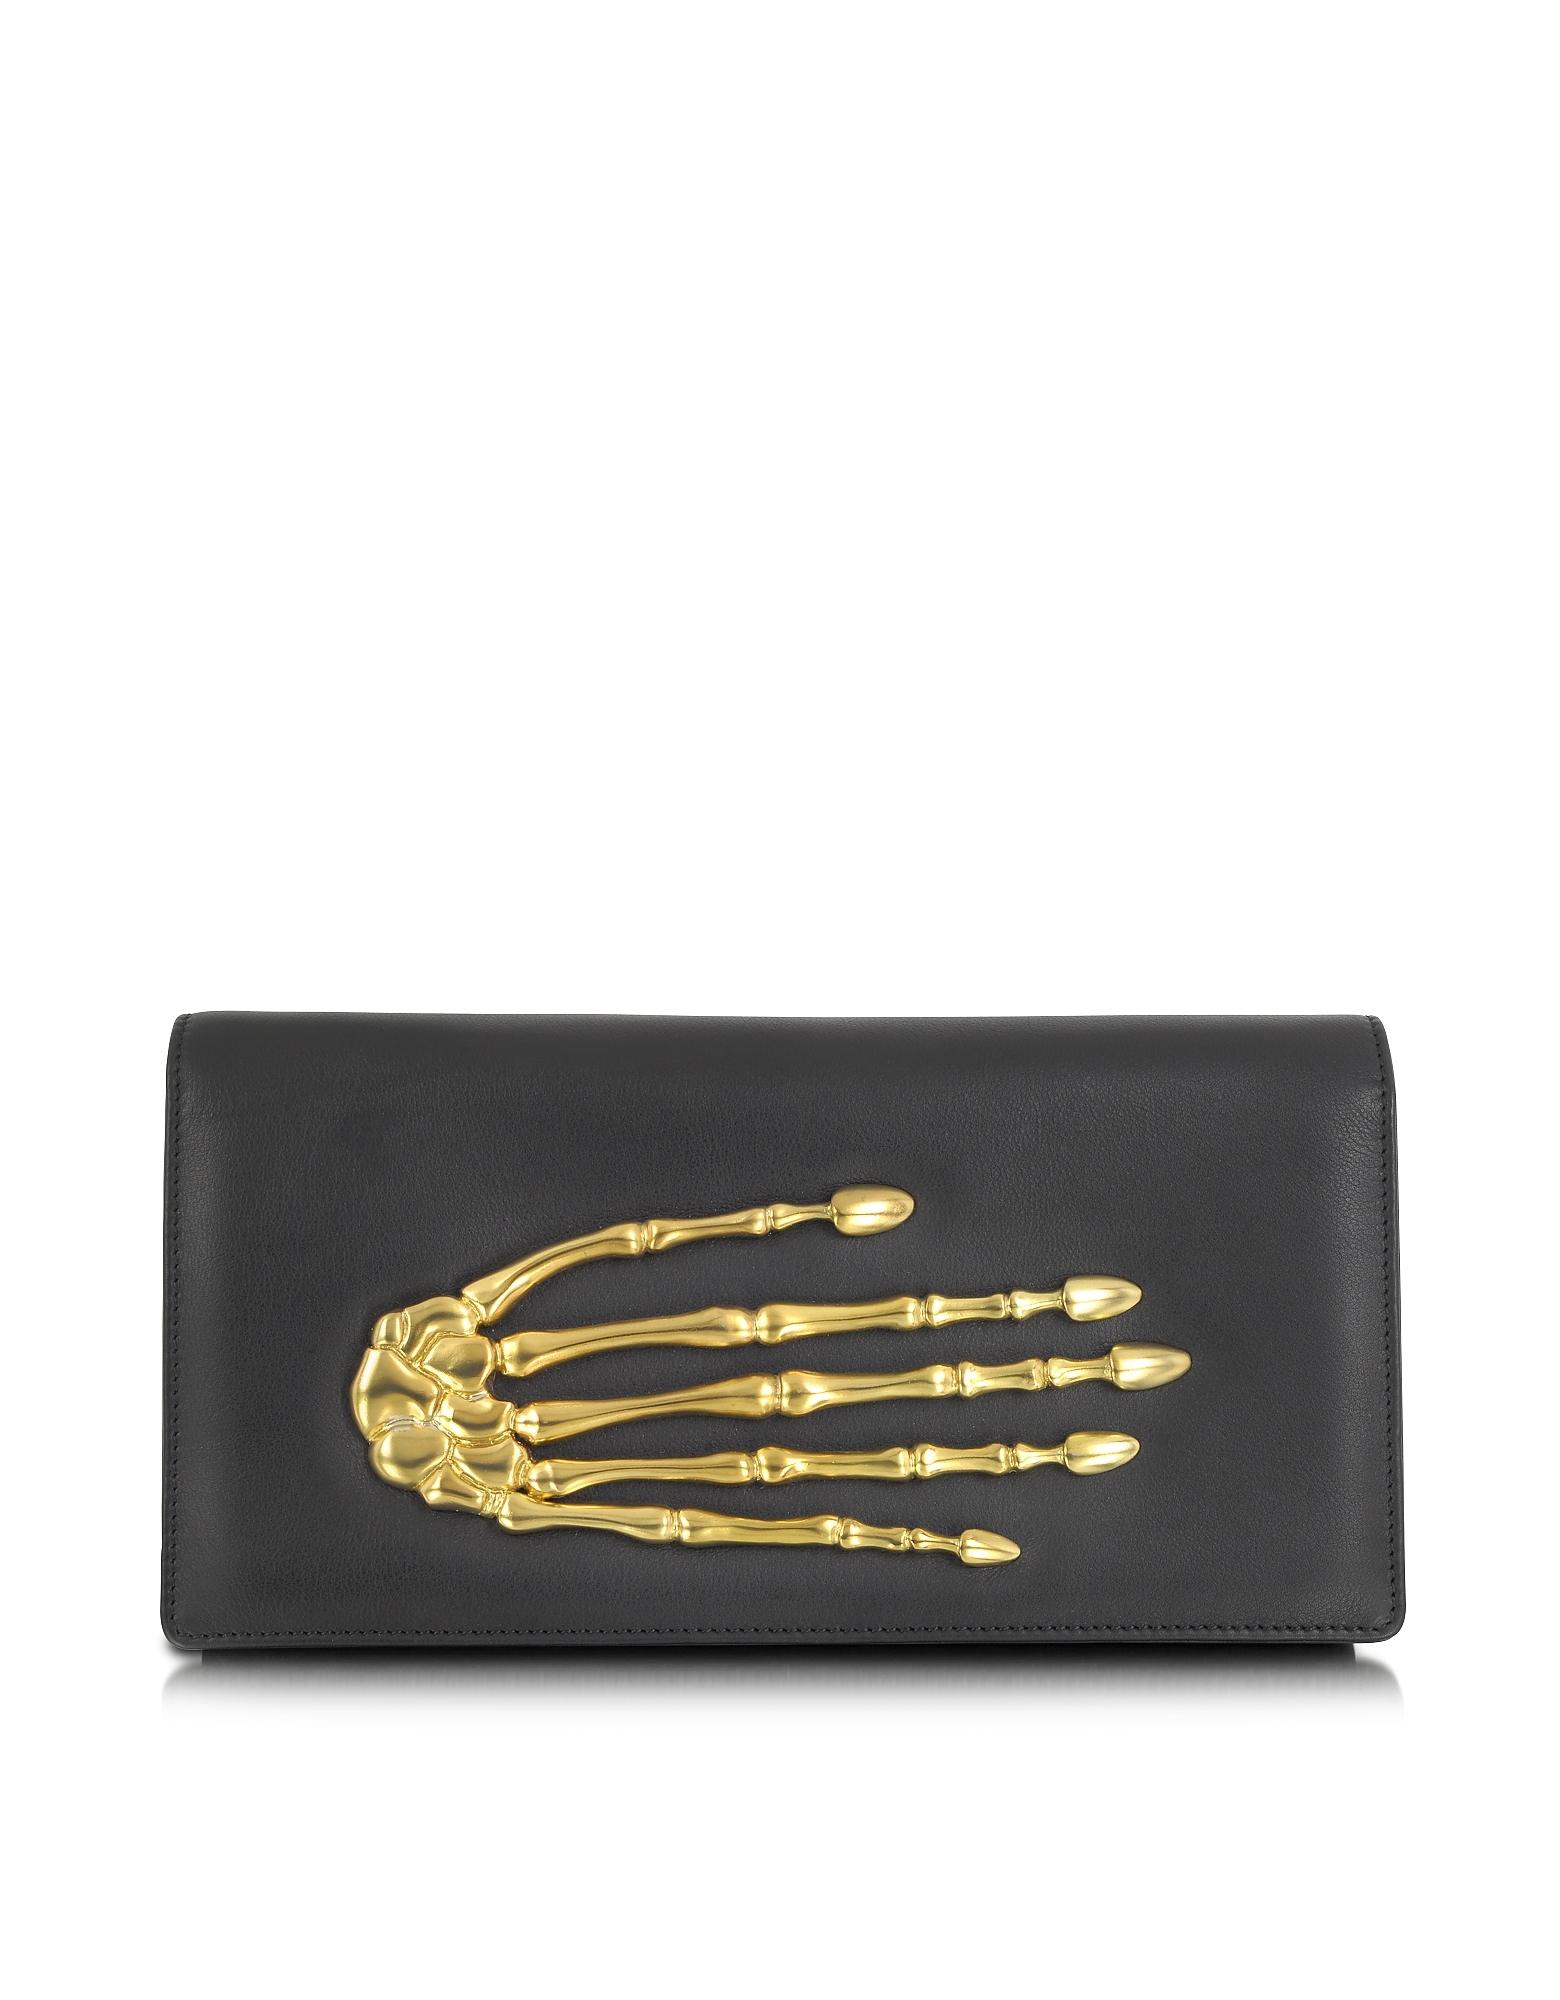 Bernard Delettrez Handbags, Black Nappa Leather Pochette w/Skeleton Hand